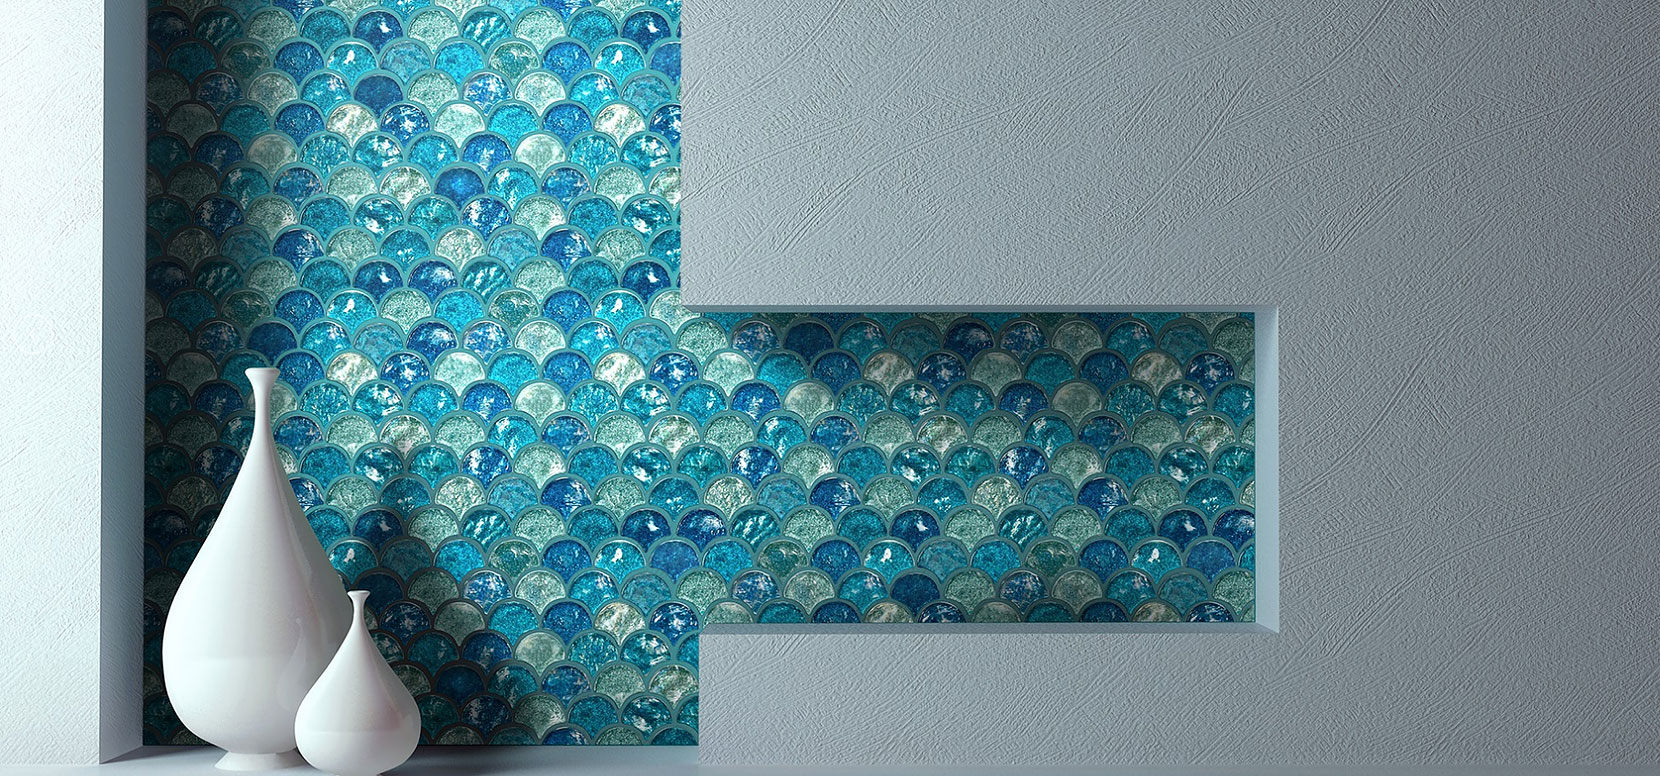 Try oasis blue fan iridescent glass mosaic tile for your backsplash try oasis blue fan iridescent glass mosaic tile for your backsplash tile foshan imark building materials co ltd dailygadgetfo Image collections